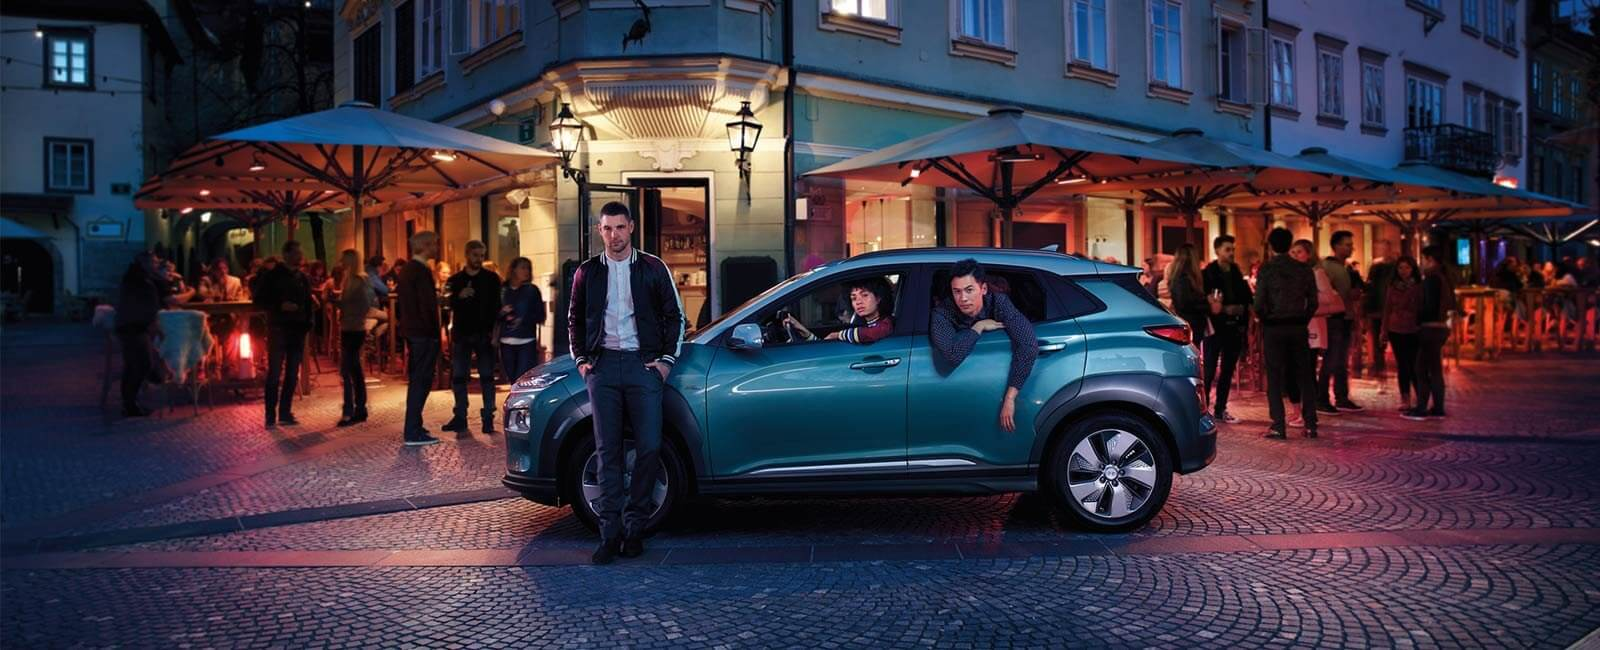 Hyundai KONA nightlife